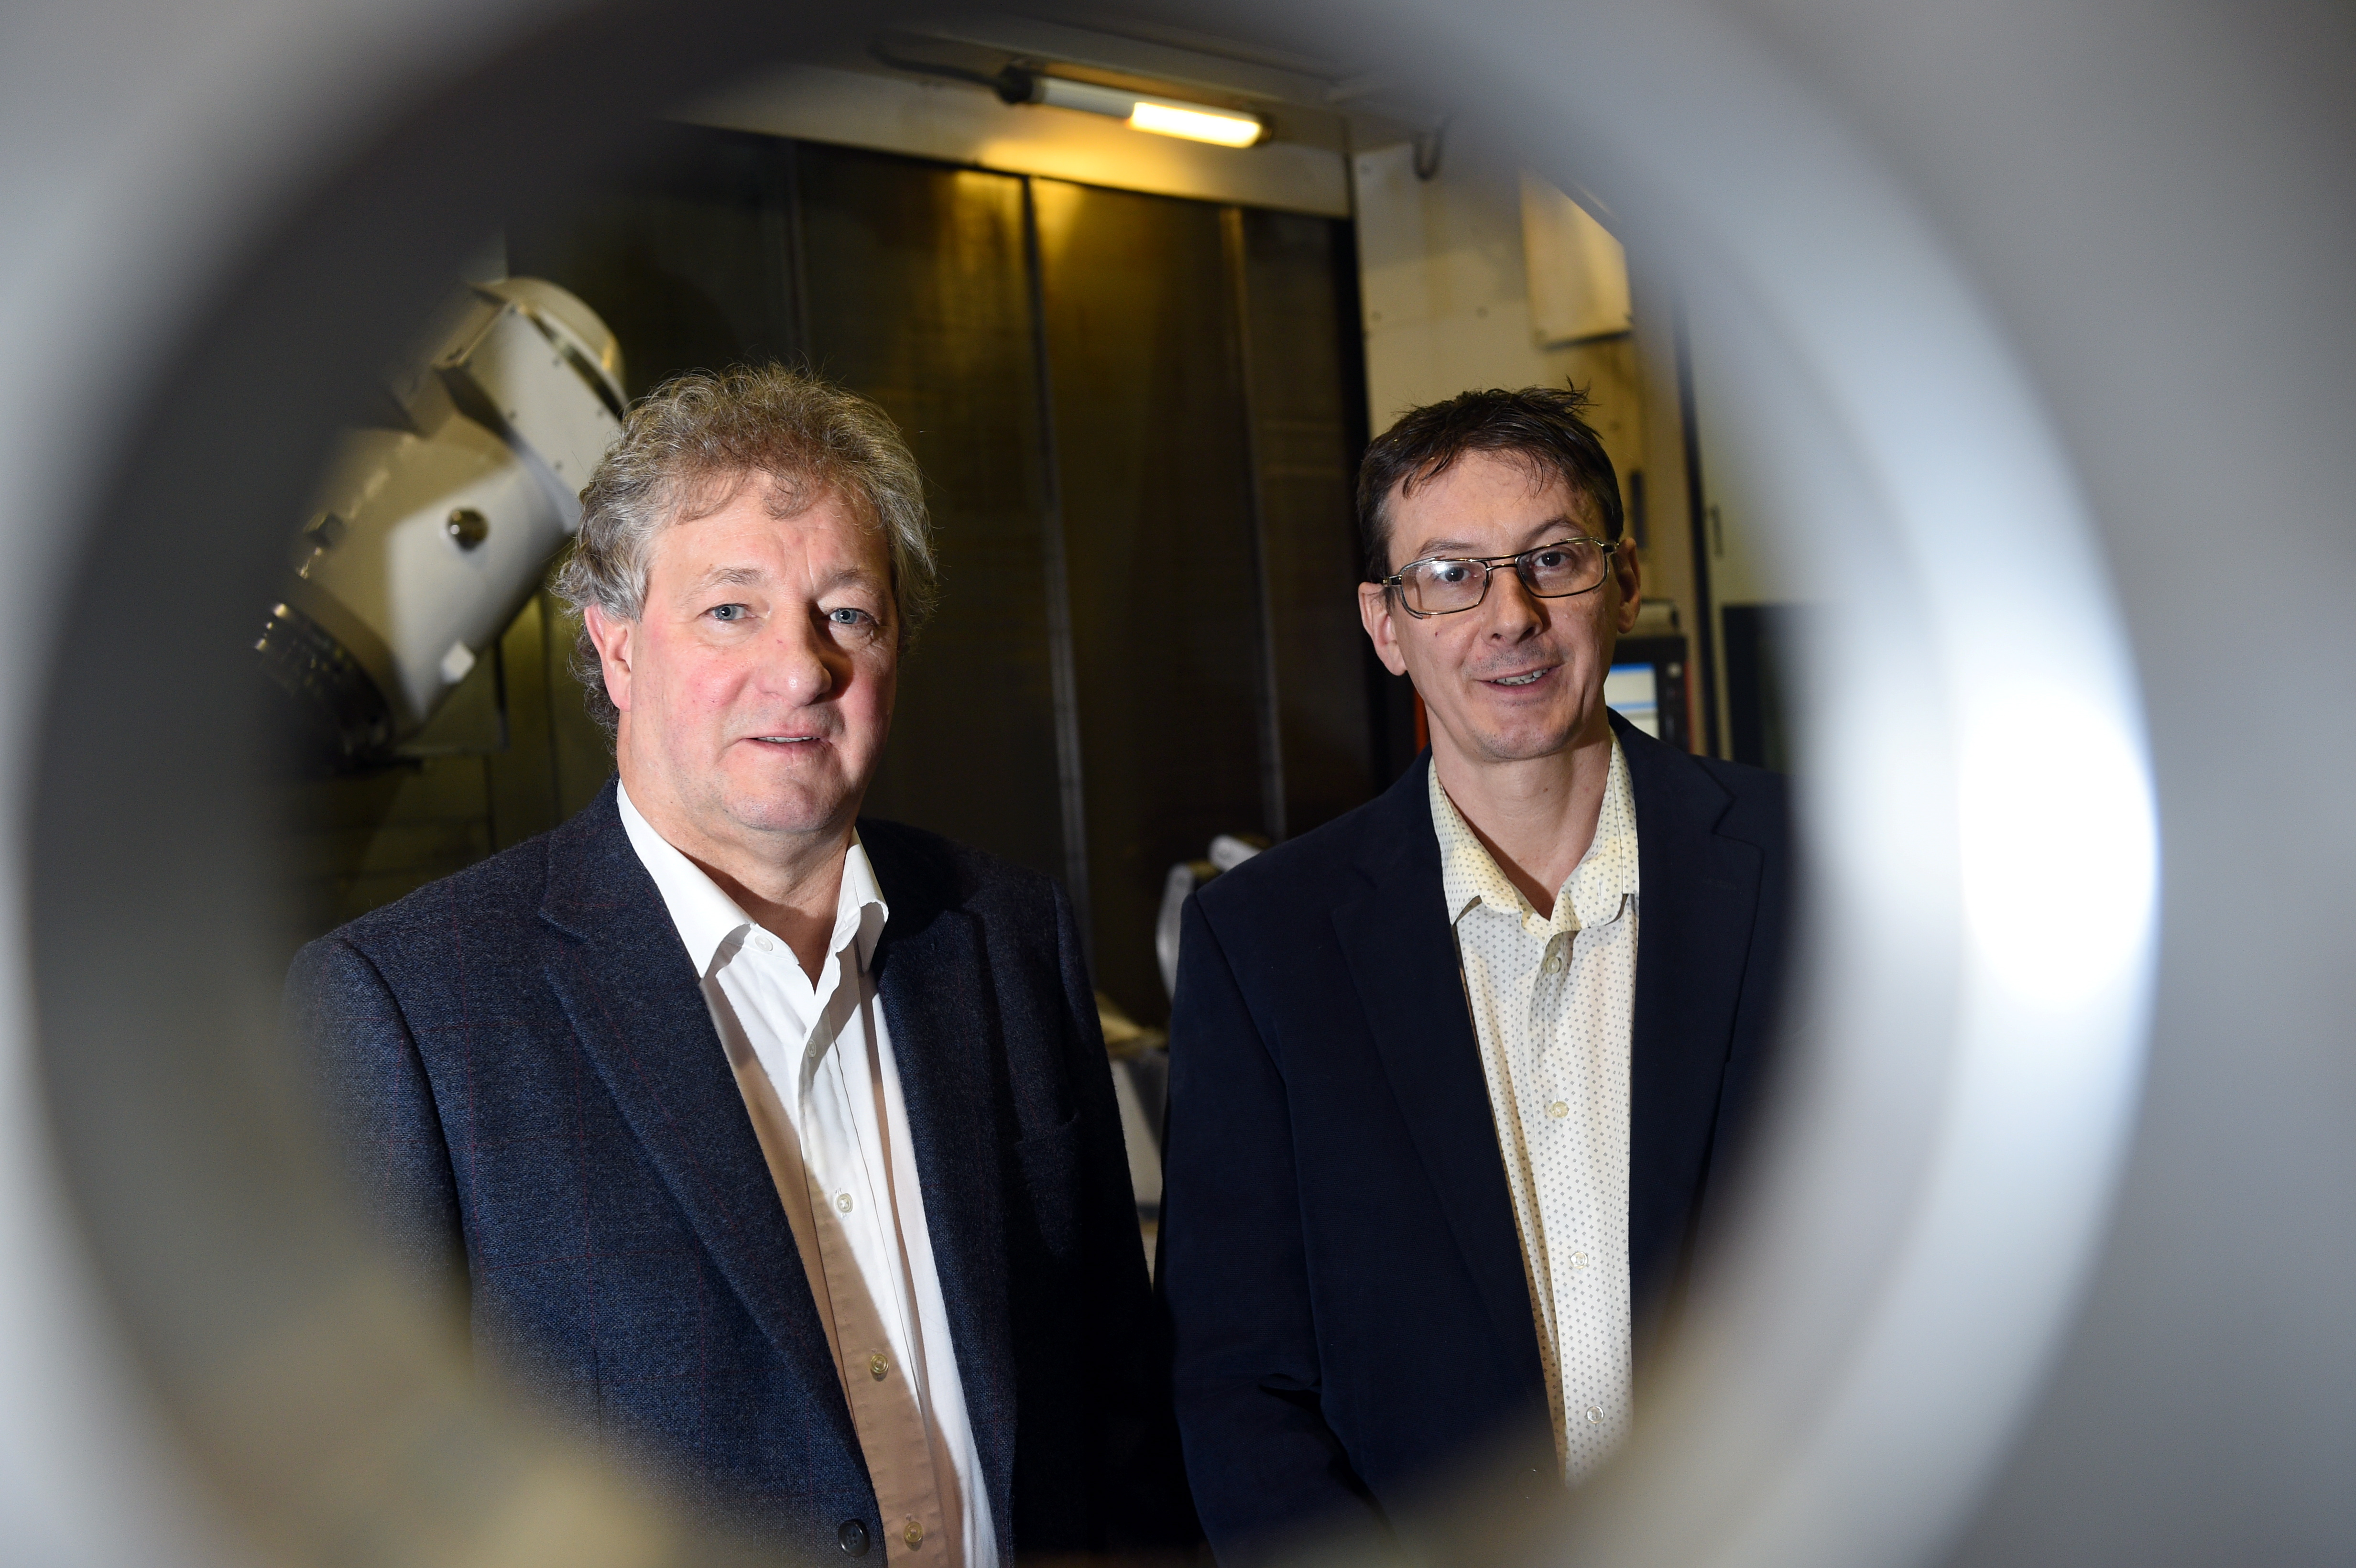 KMS founder and director Graham Truscott, left, with managing director Brian Davie.